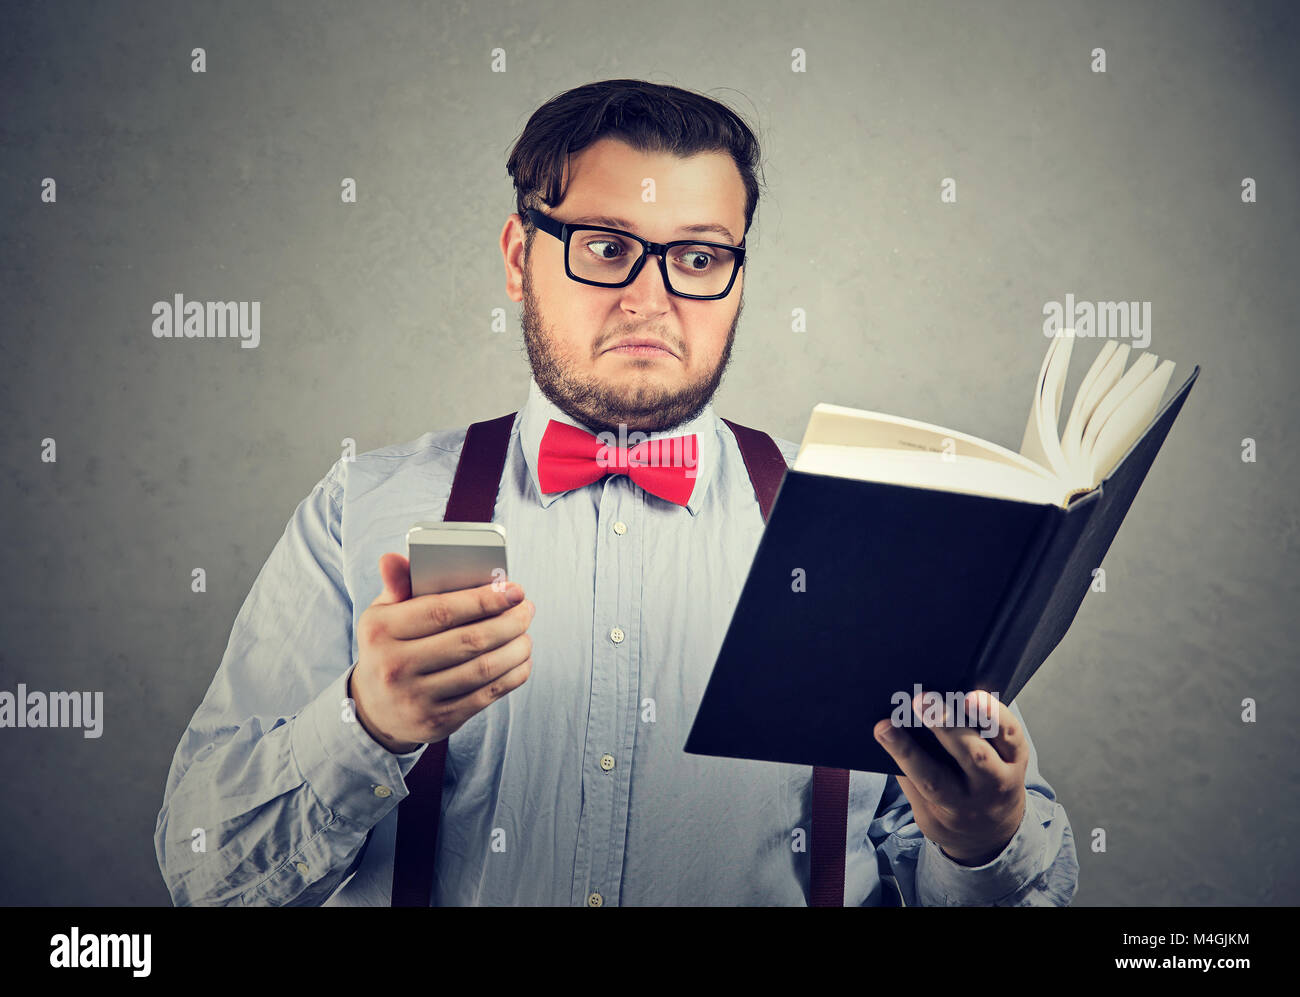 Young chubby man holding printed book and smartphone looking extremely puzzled. - Stock Image